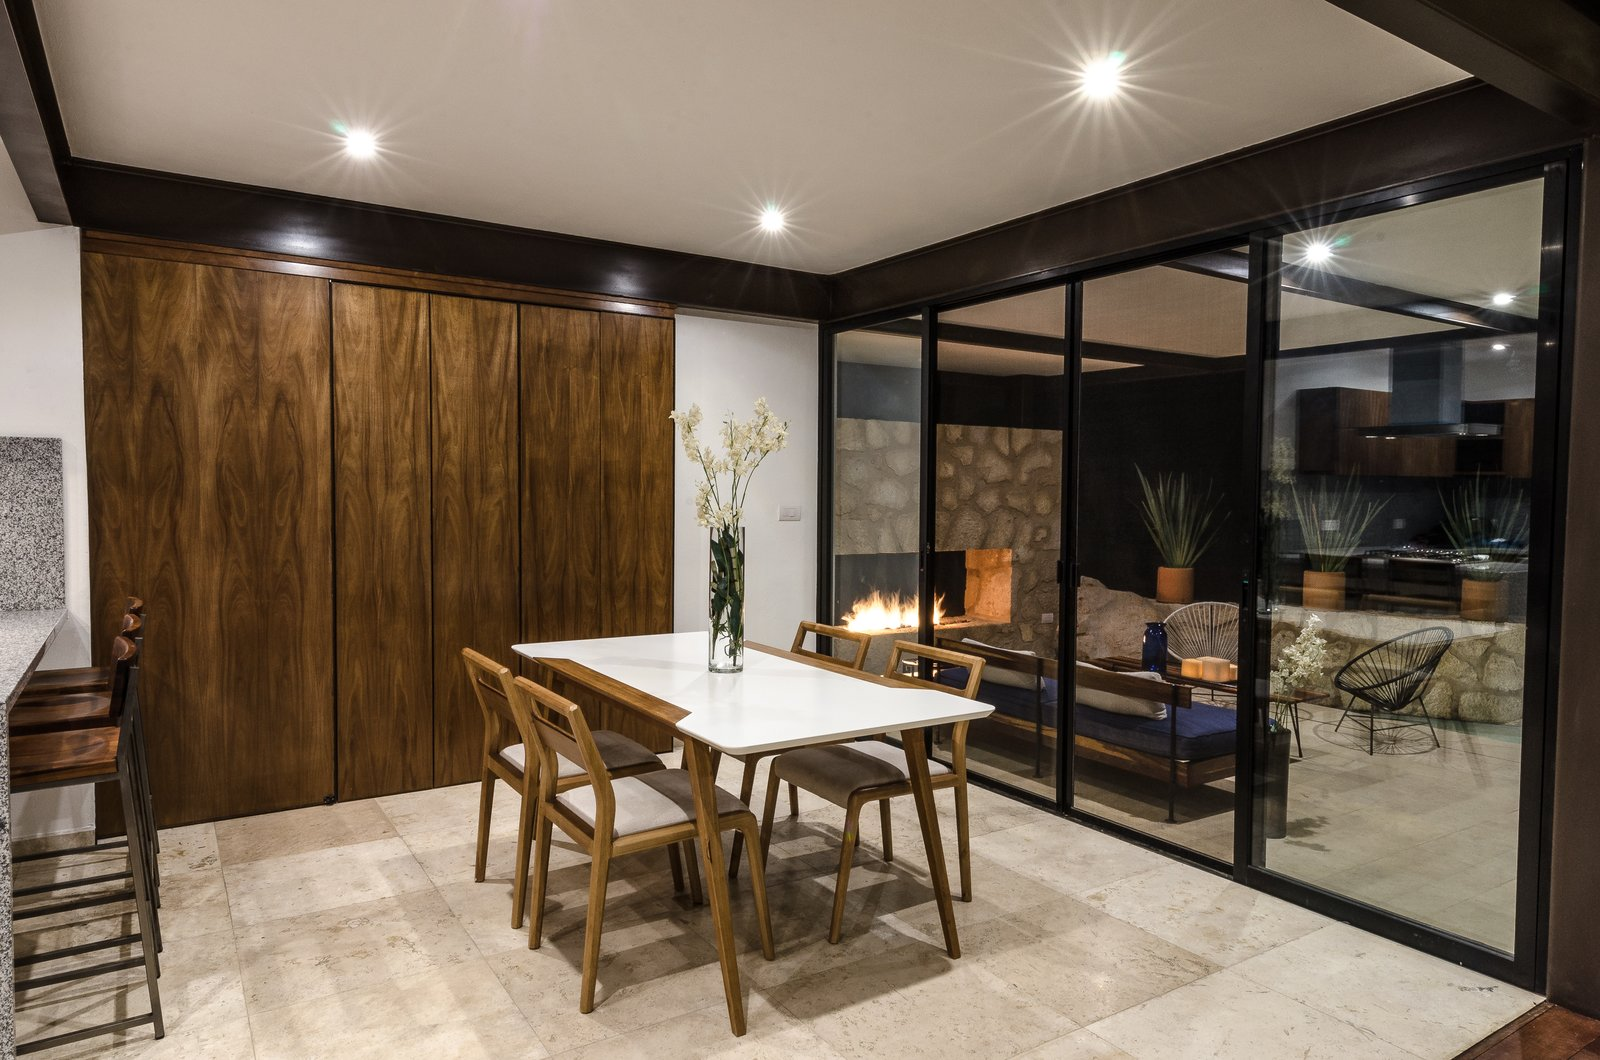 Dining Room, Two-Sided Fireplace, Table, Travertine Floor, Chair, Storage, and Ceiling Lighting Dinning and terrace  CQ12 by tescala